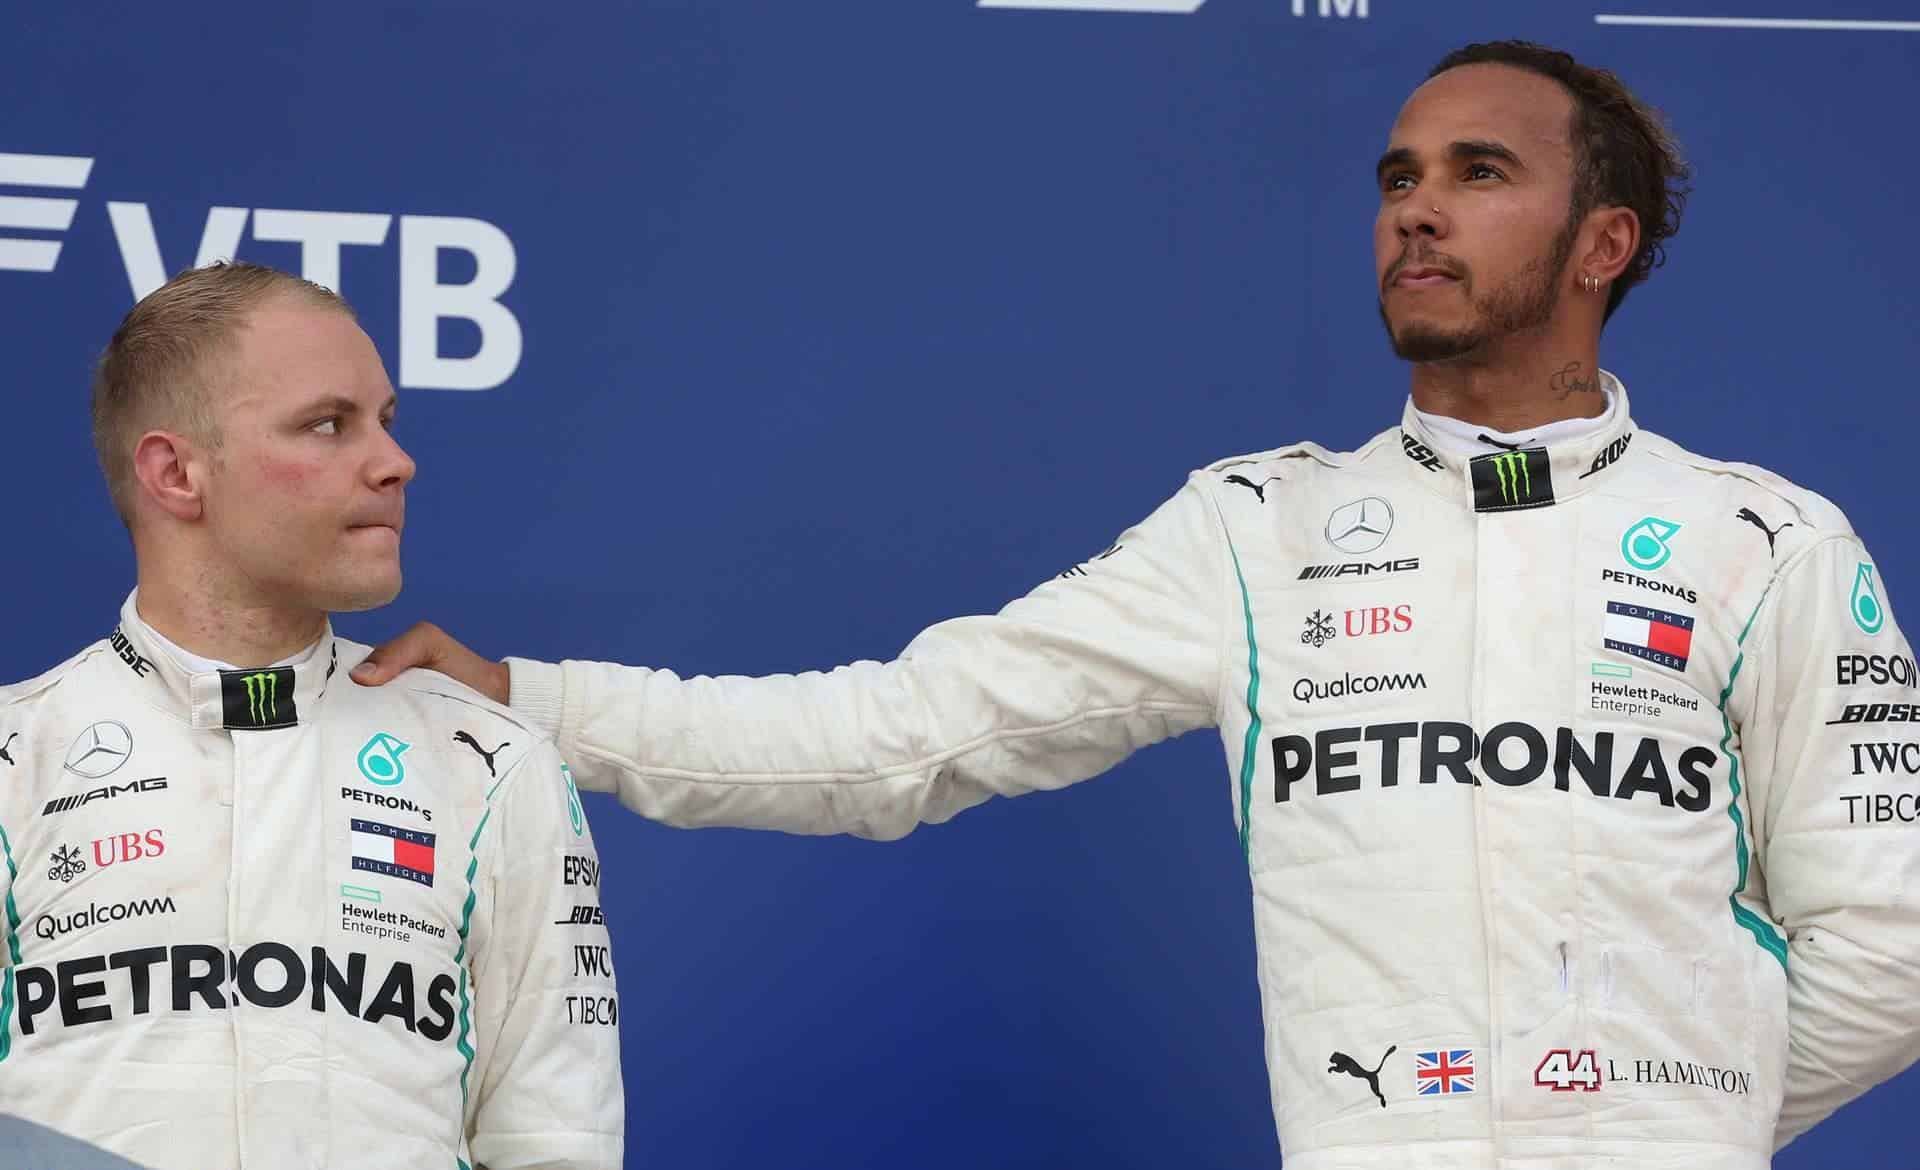 Hamilton Bottas Mercedes Russian GP F1 2018 after the race podium Photo Daimler